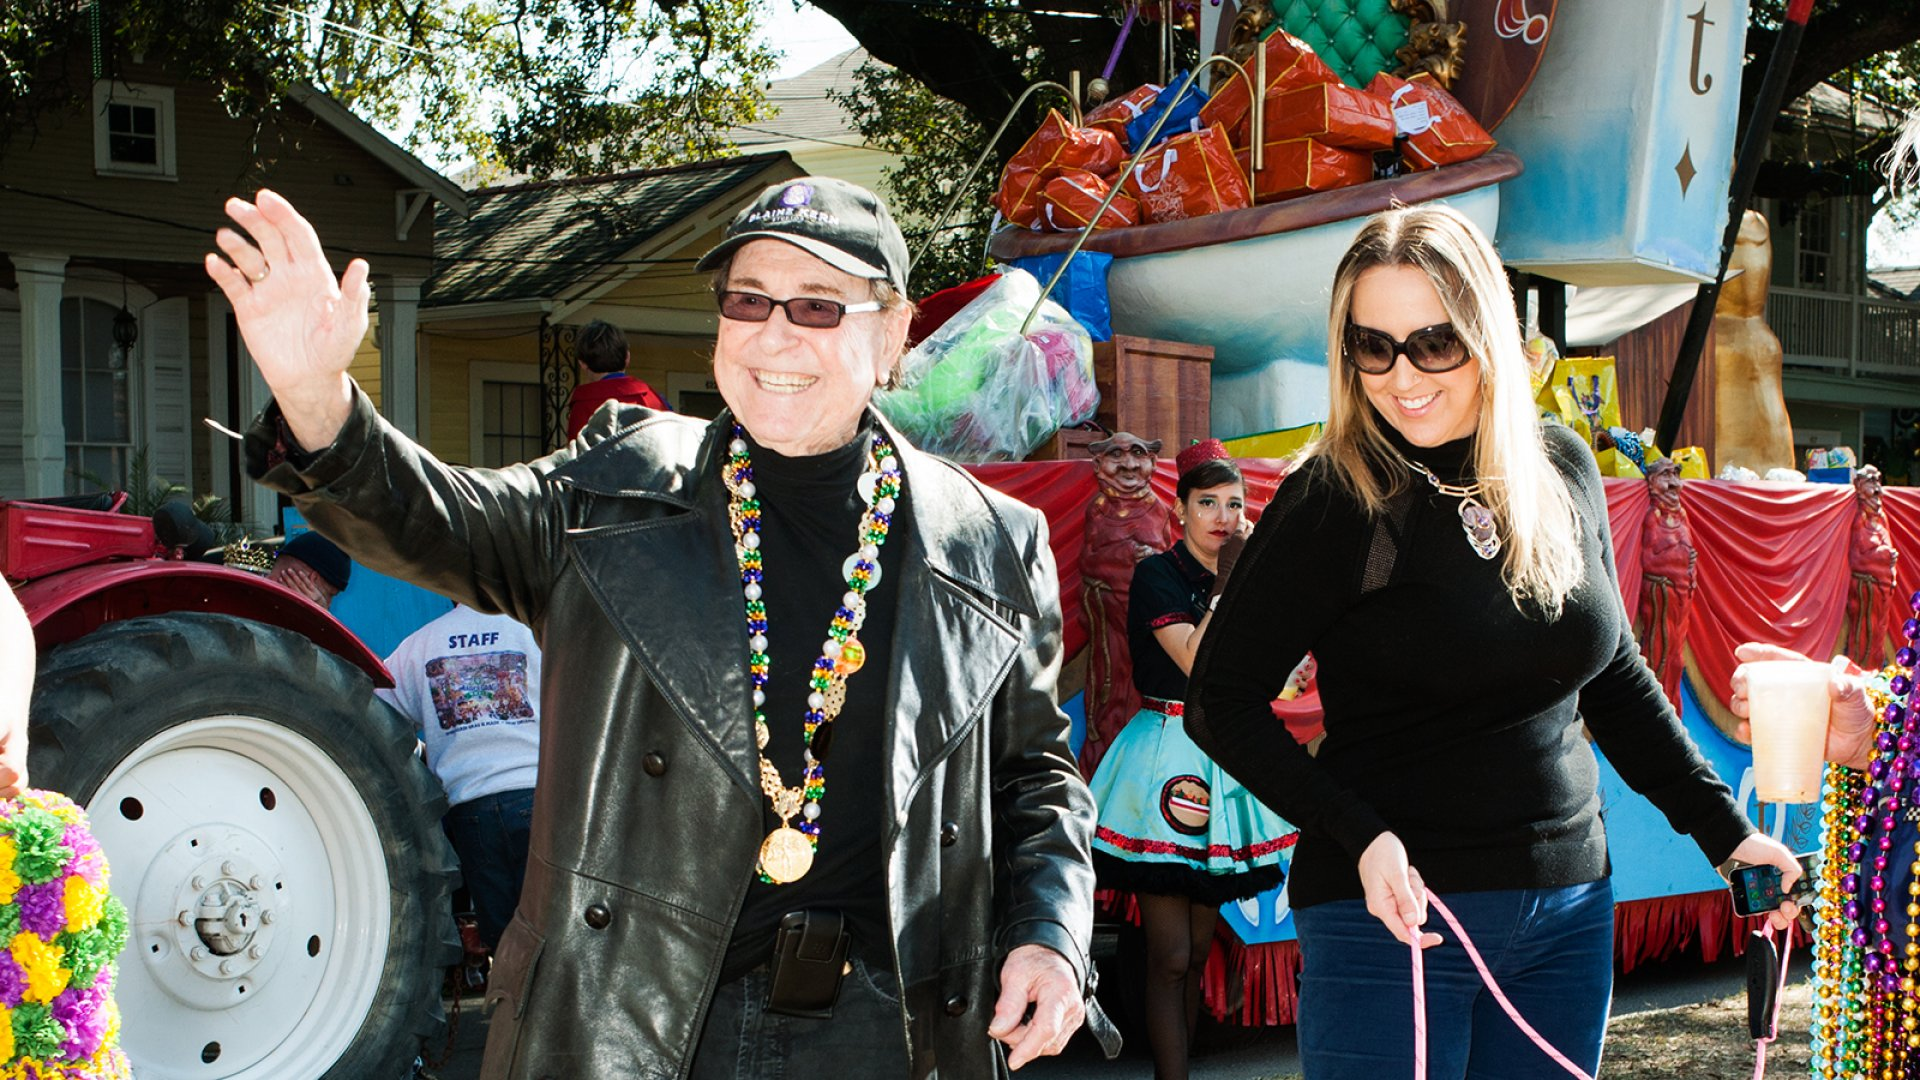 Blaine Kern Sr., the founder of New Orleans legendary Mardi Gras float maker Blaine Kern Studios, and Holly Kern, a sometime rapper nearly 50 years his junior, who's saved his life with CPR more than once.